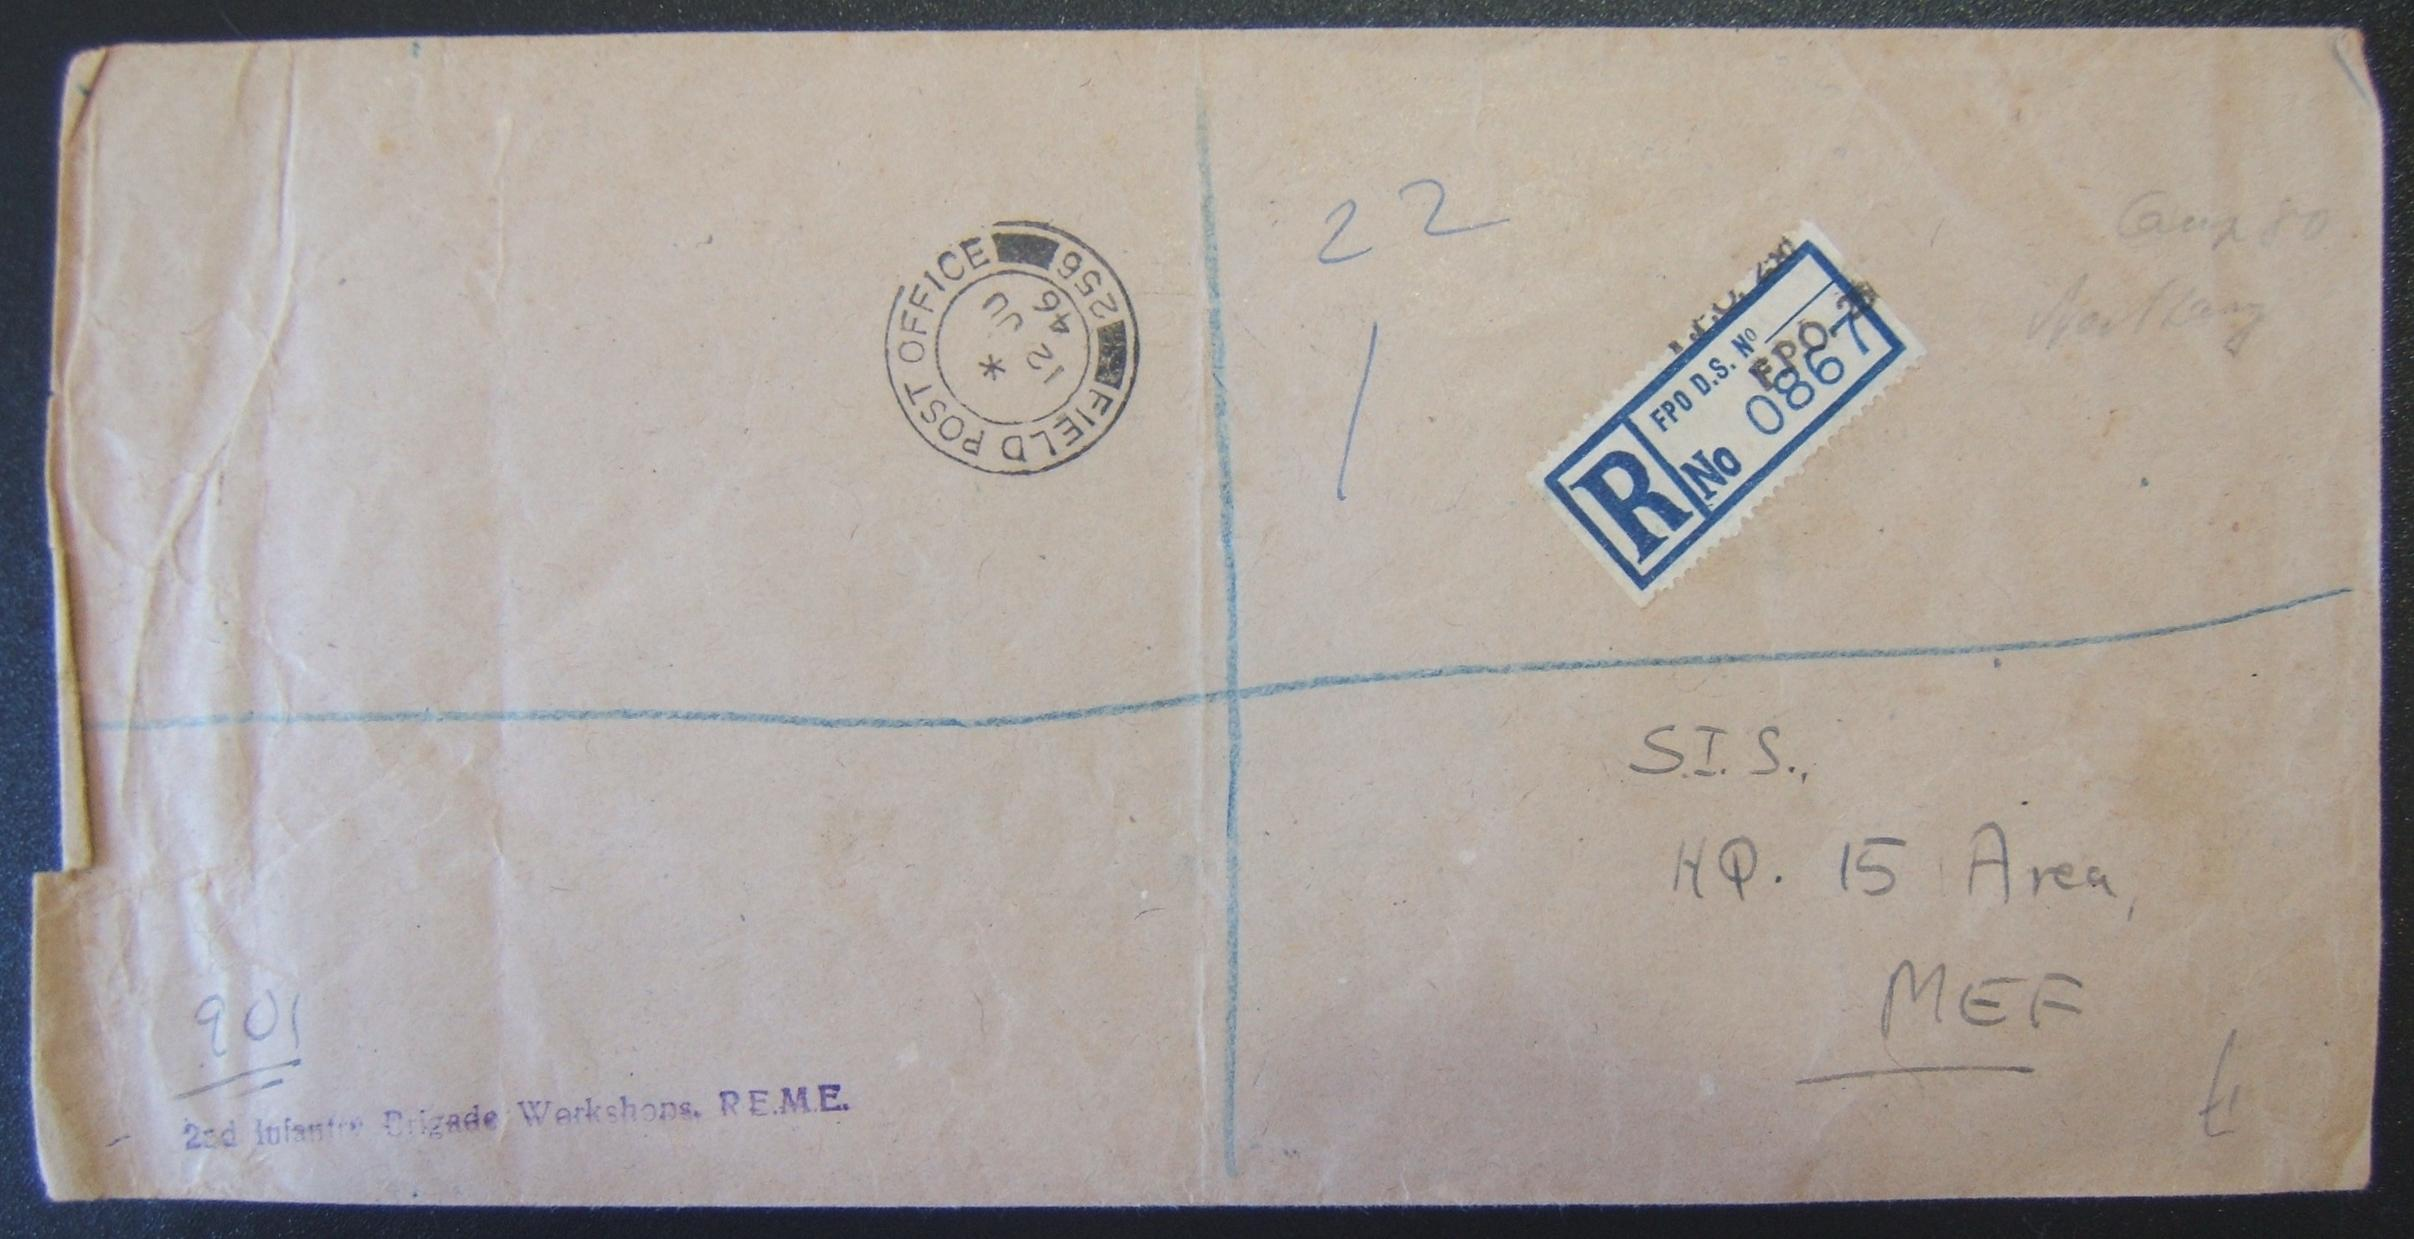 Palestine domestic military mail: registered OHMS stationary stampless cover ex FPO 256 (Royal Electrical and Mechanical Engineers [REME] unit at Camp 80, near Pardes Hanna) to SIS